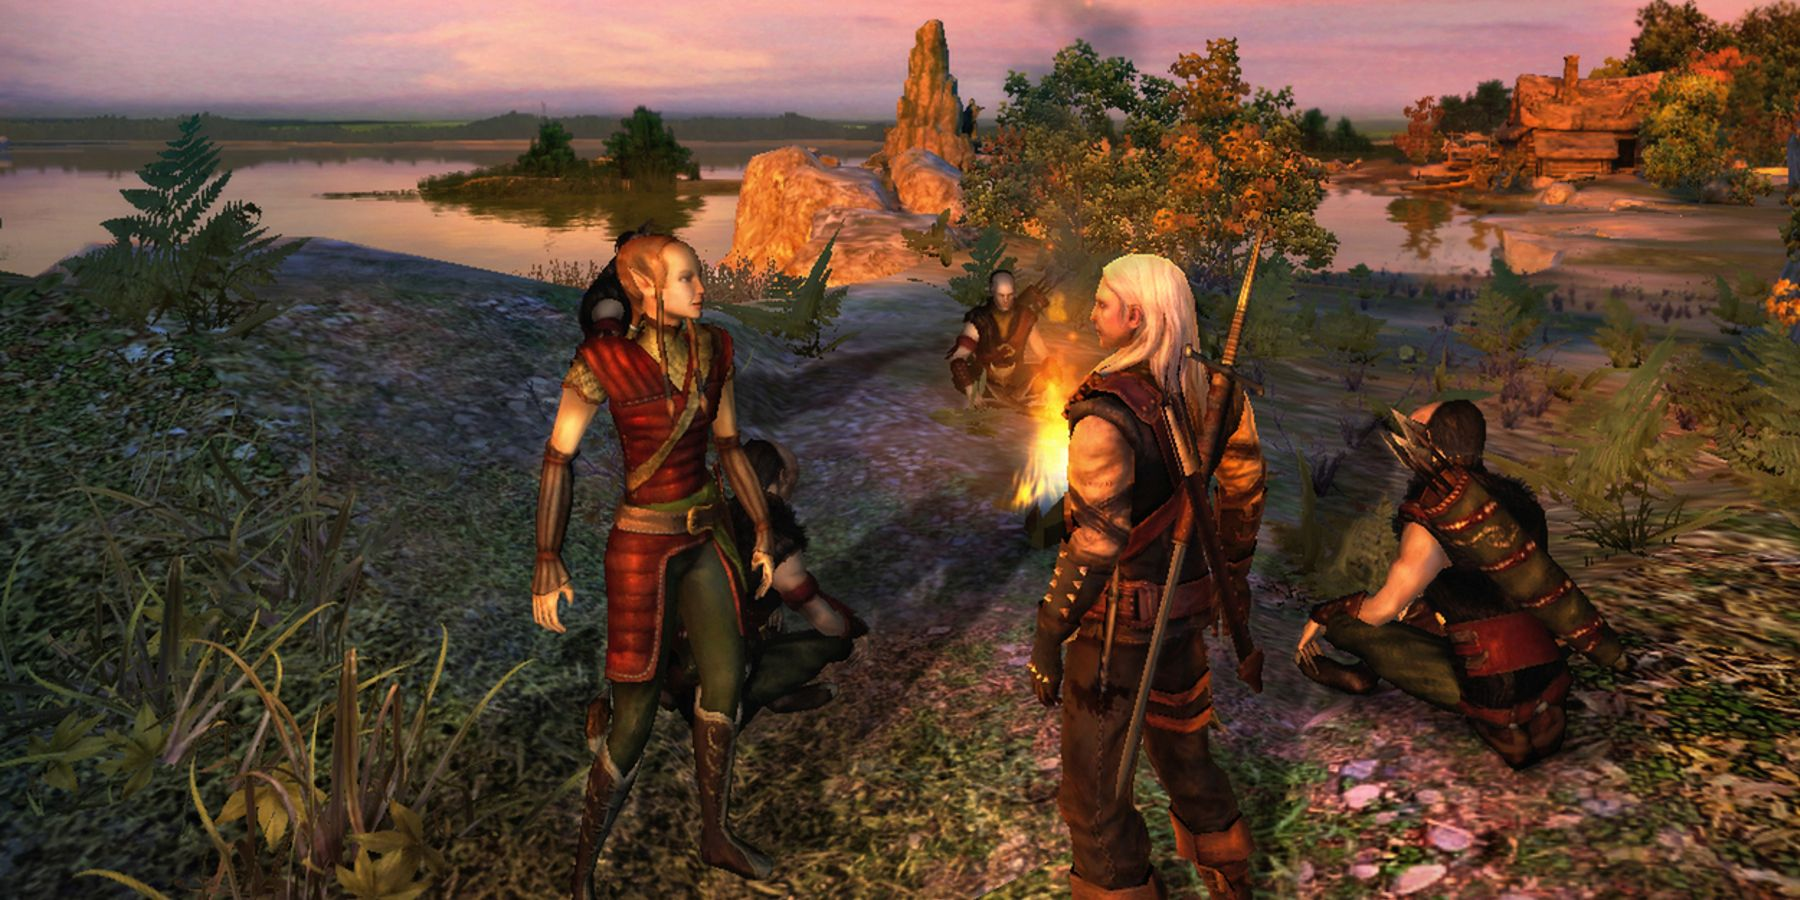 A Remake of The Original Witcher Game Would Be Worthwhile